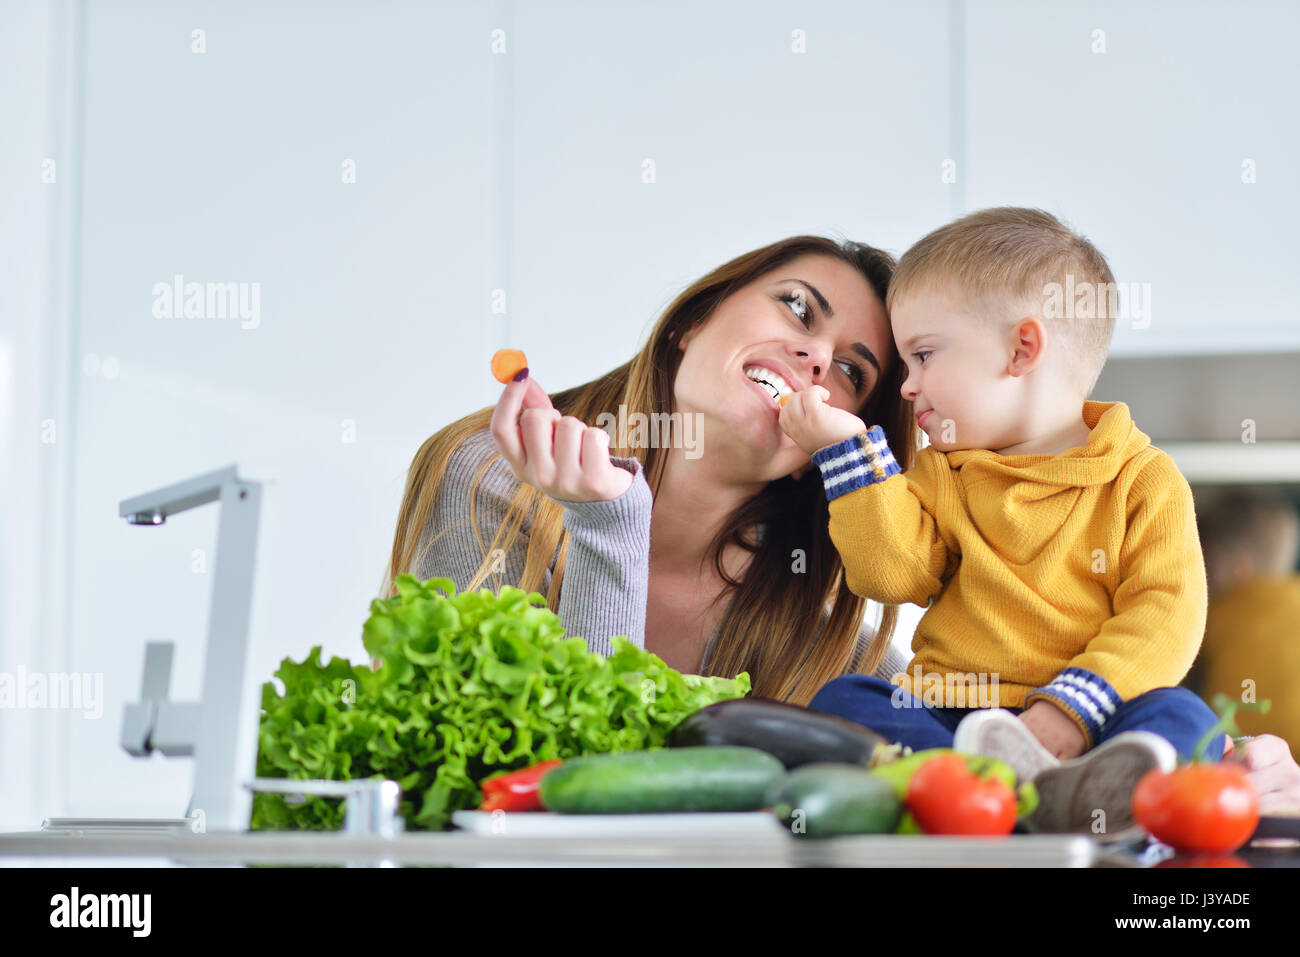 Mother and child preparing lunch from fresh veggies - Stock Image